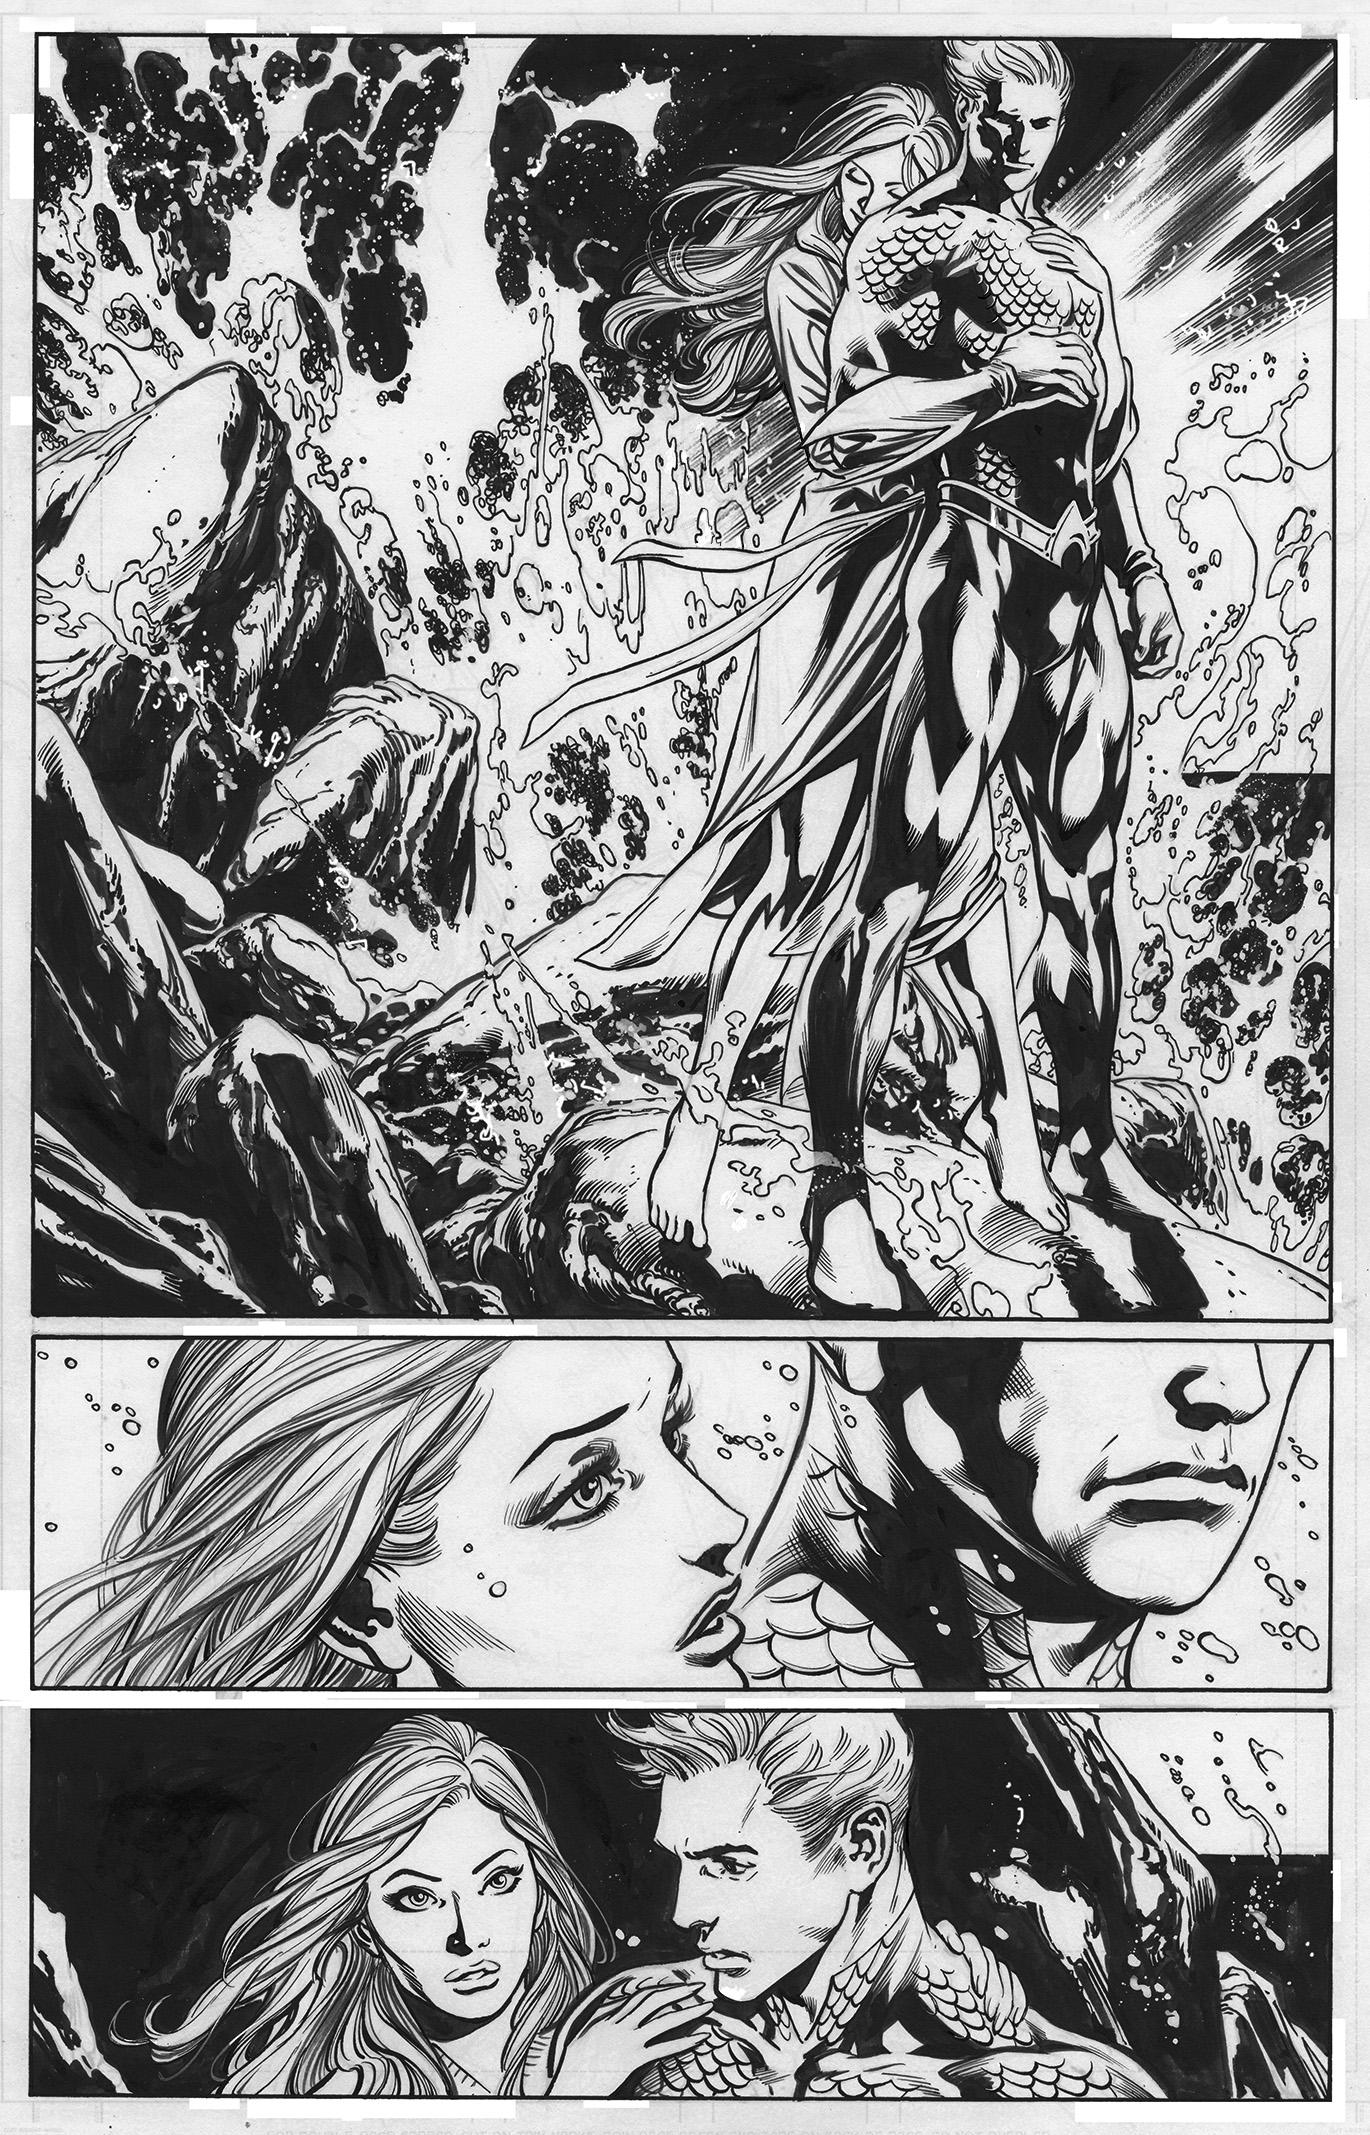 Aquaman & Mera. Inks over Ivan Reis pencils.